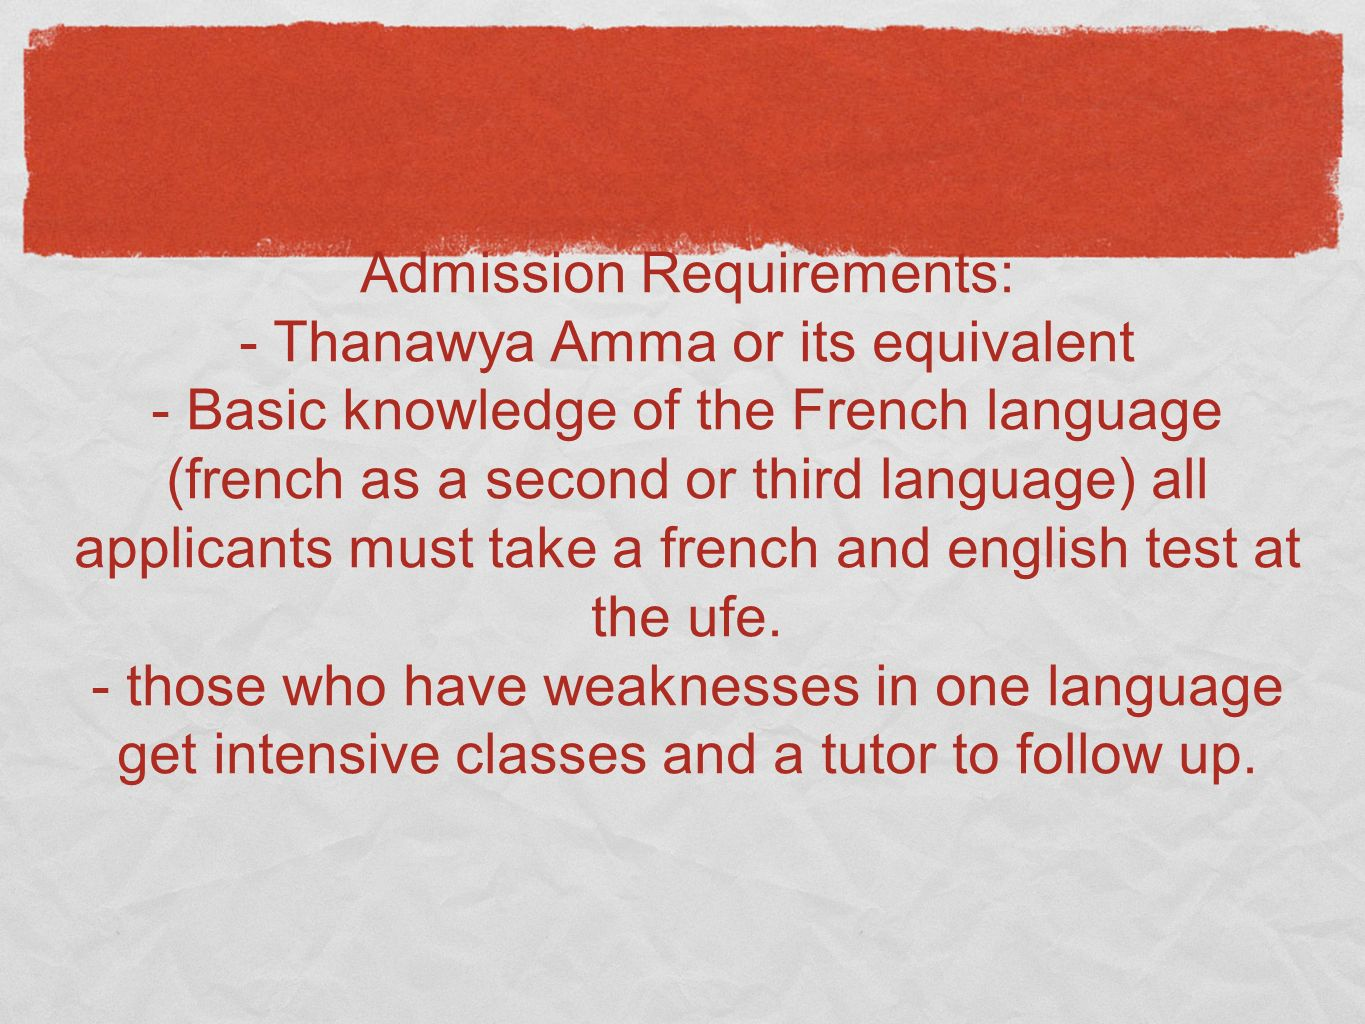 Admission Requirements: - Thanawya Amma or its equivalent - Basic knowledge of the French language (french as a second or third language) all applicants must take a french and english test at the ufe.